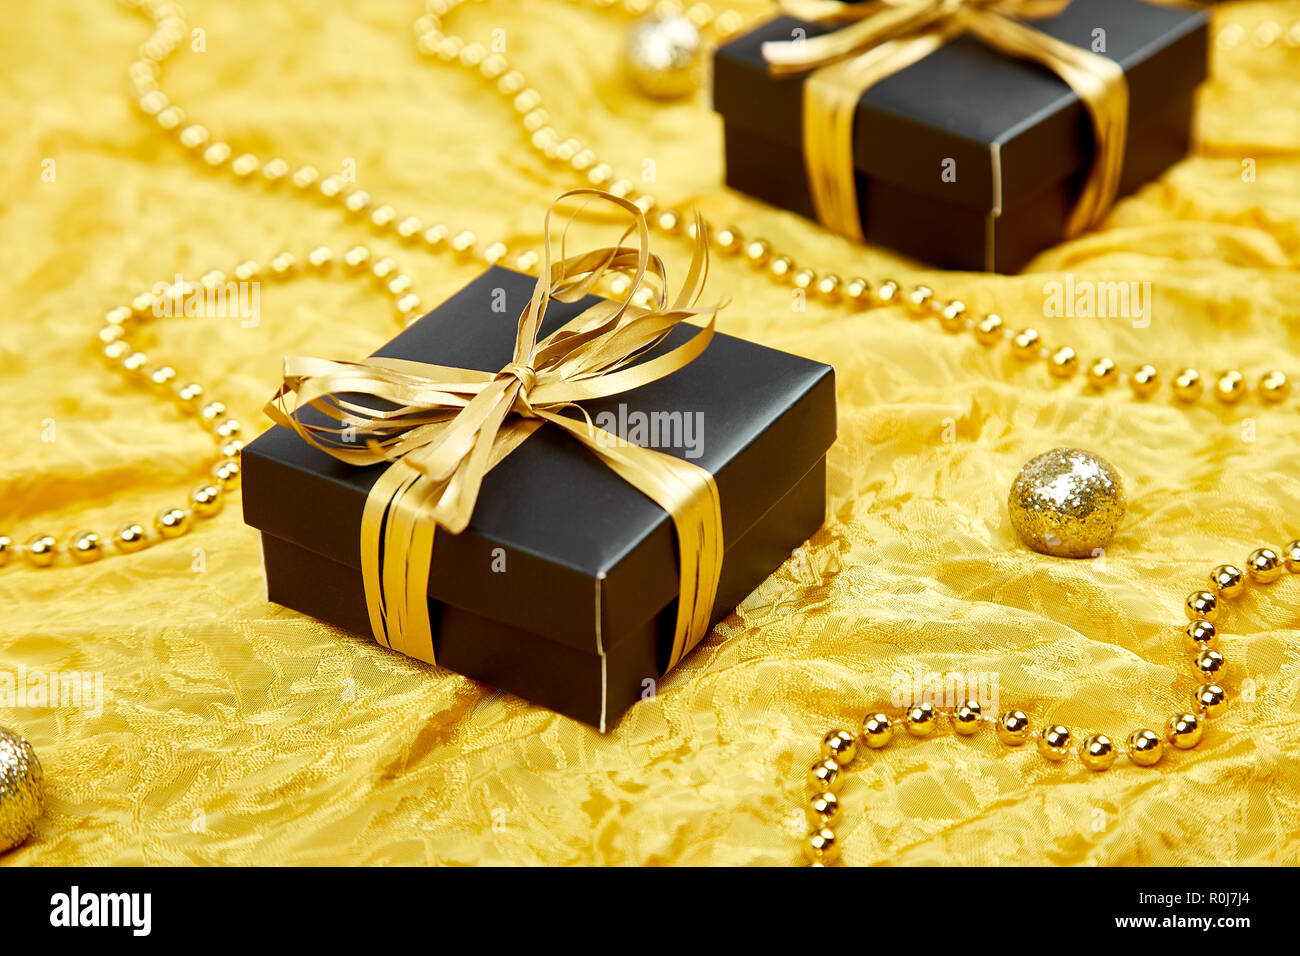 Black Gift Boxes Luxury Black Gift Boxes With Gold Ribbon On Shine Gold Background